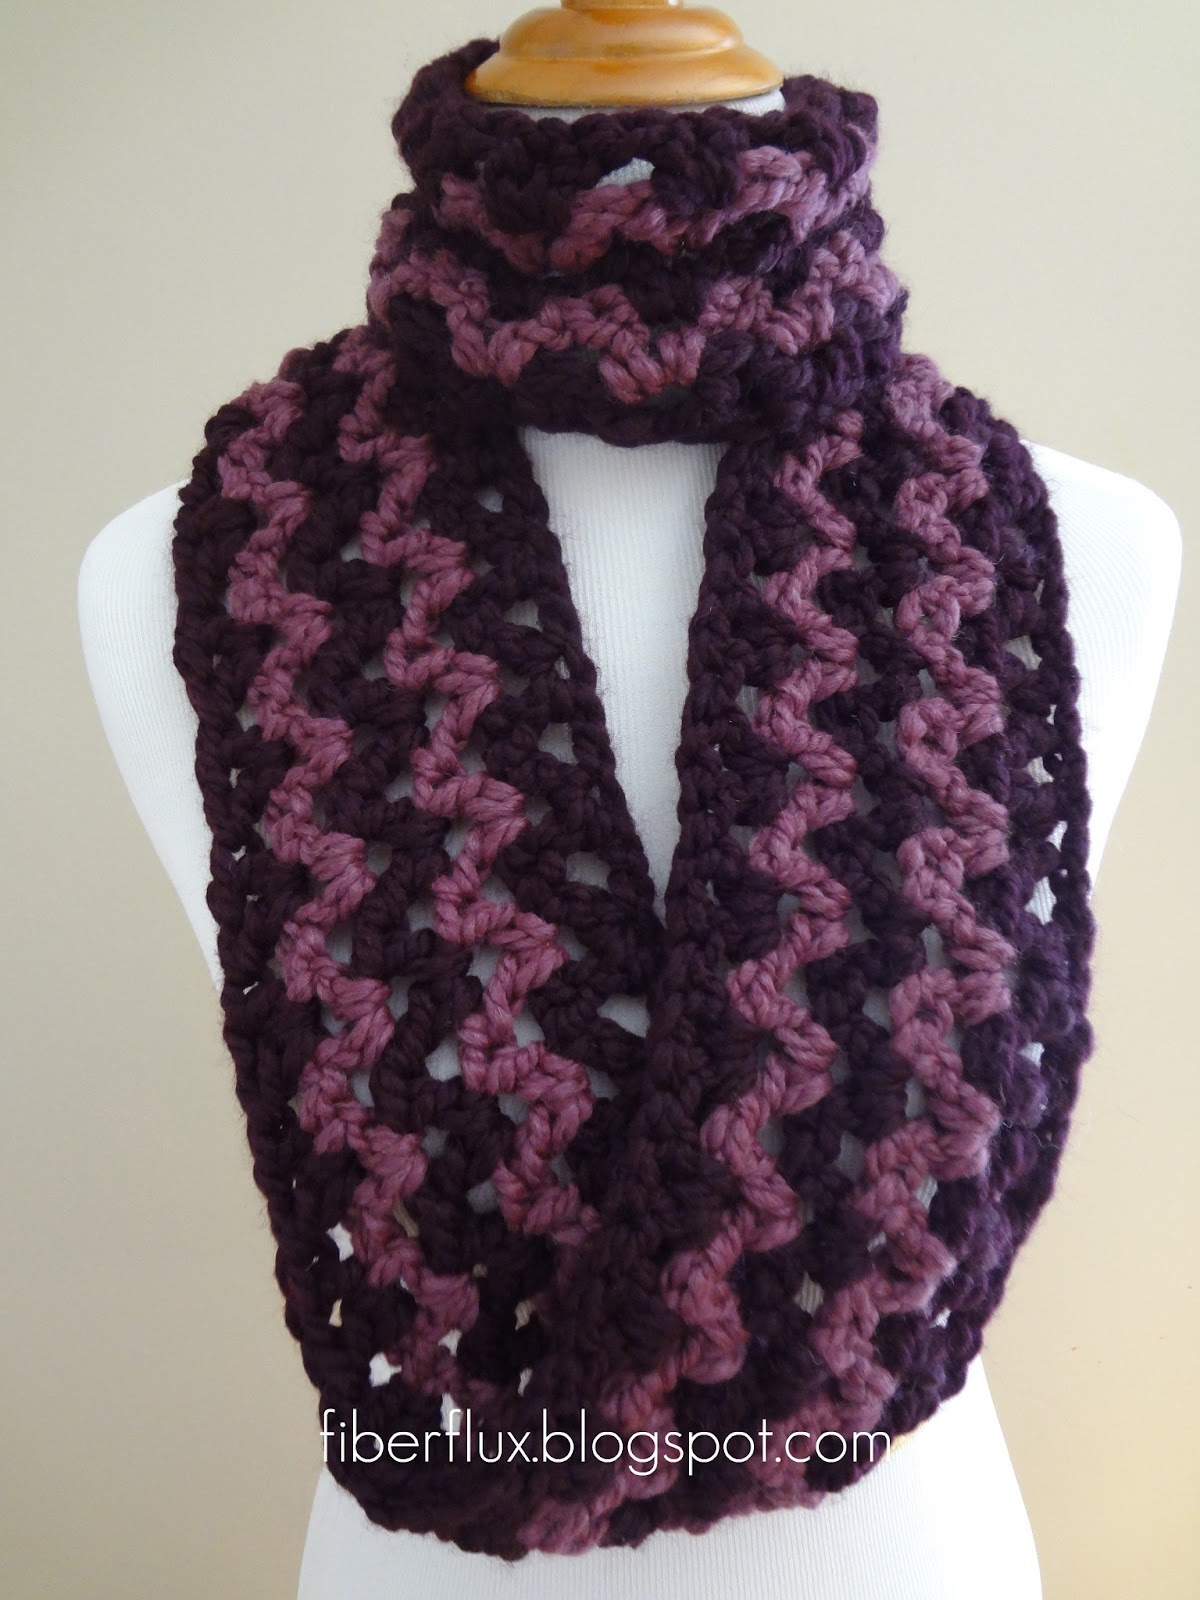 Free Crochet Patterns For An Infinity Scarf : Fiber Flux: Free Crochet Pattern...Pinot Noir Infinity Scarf